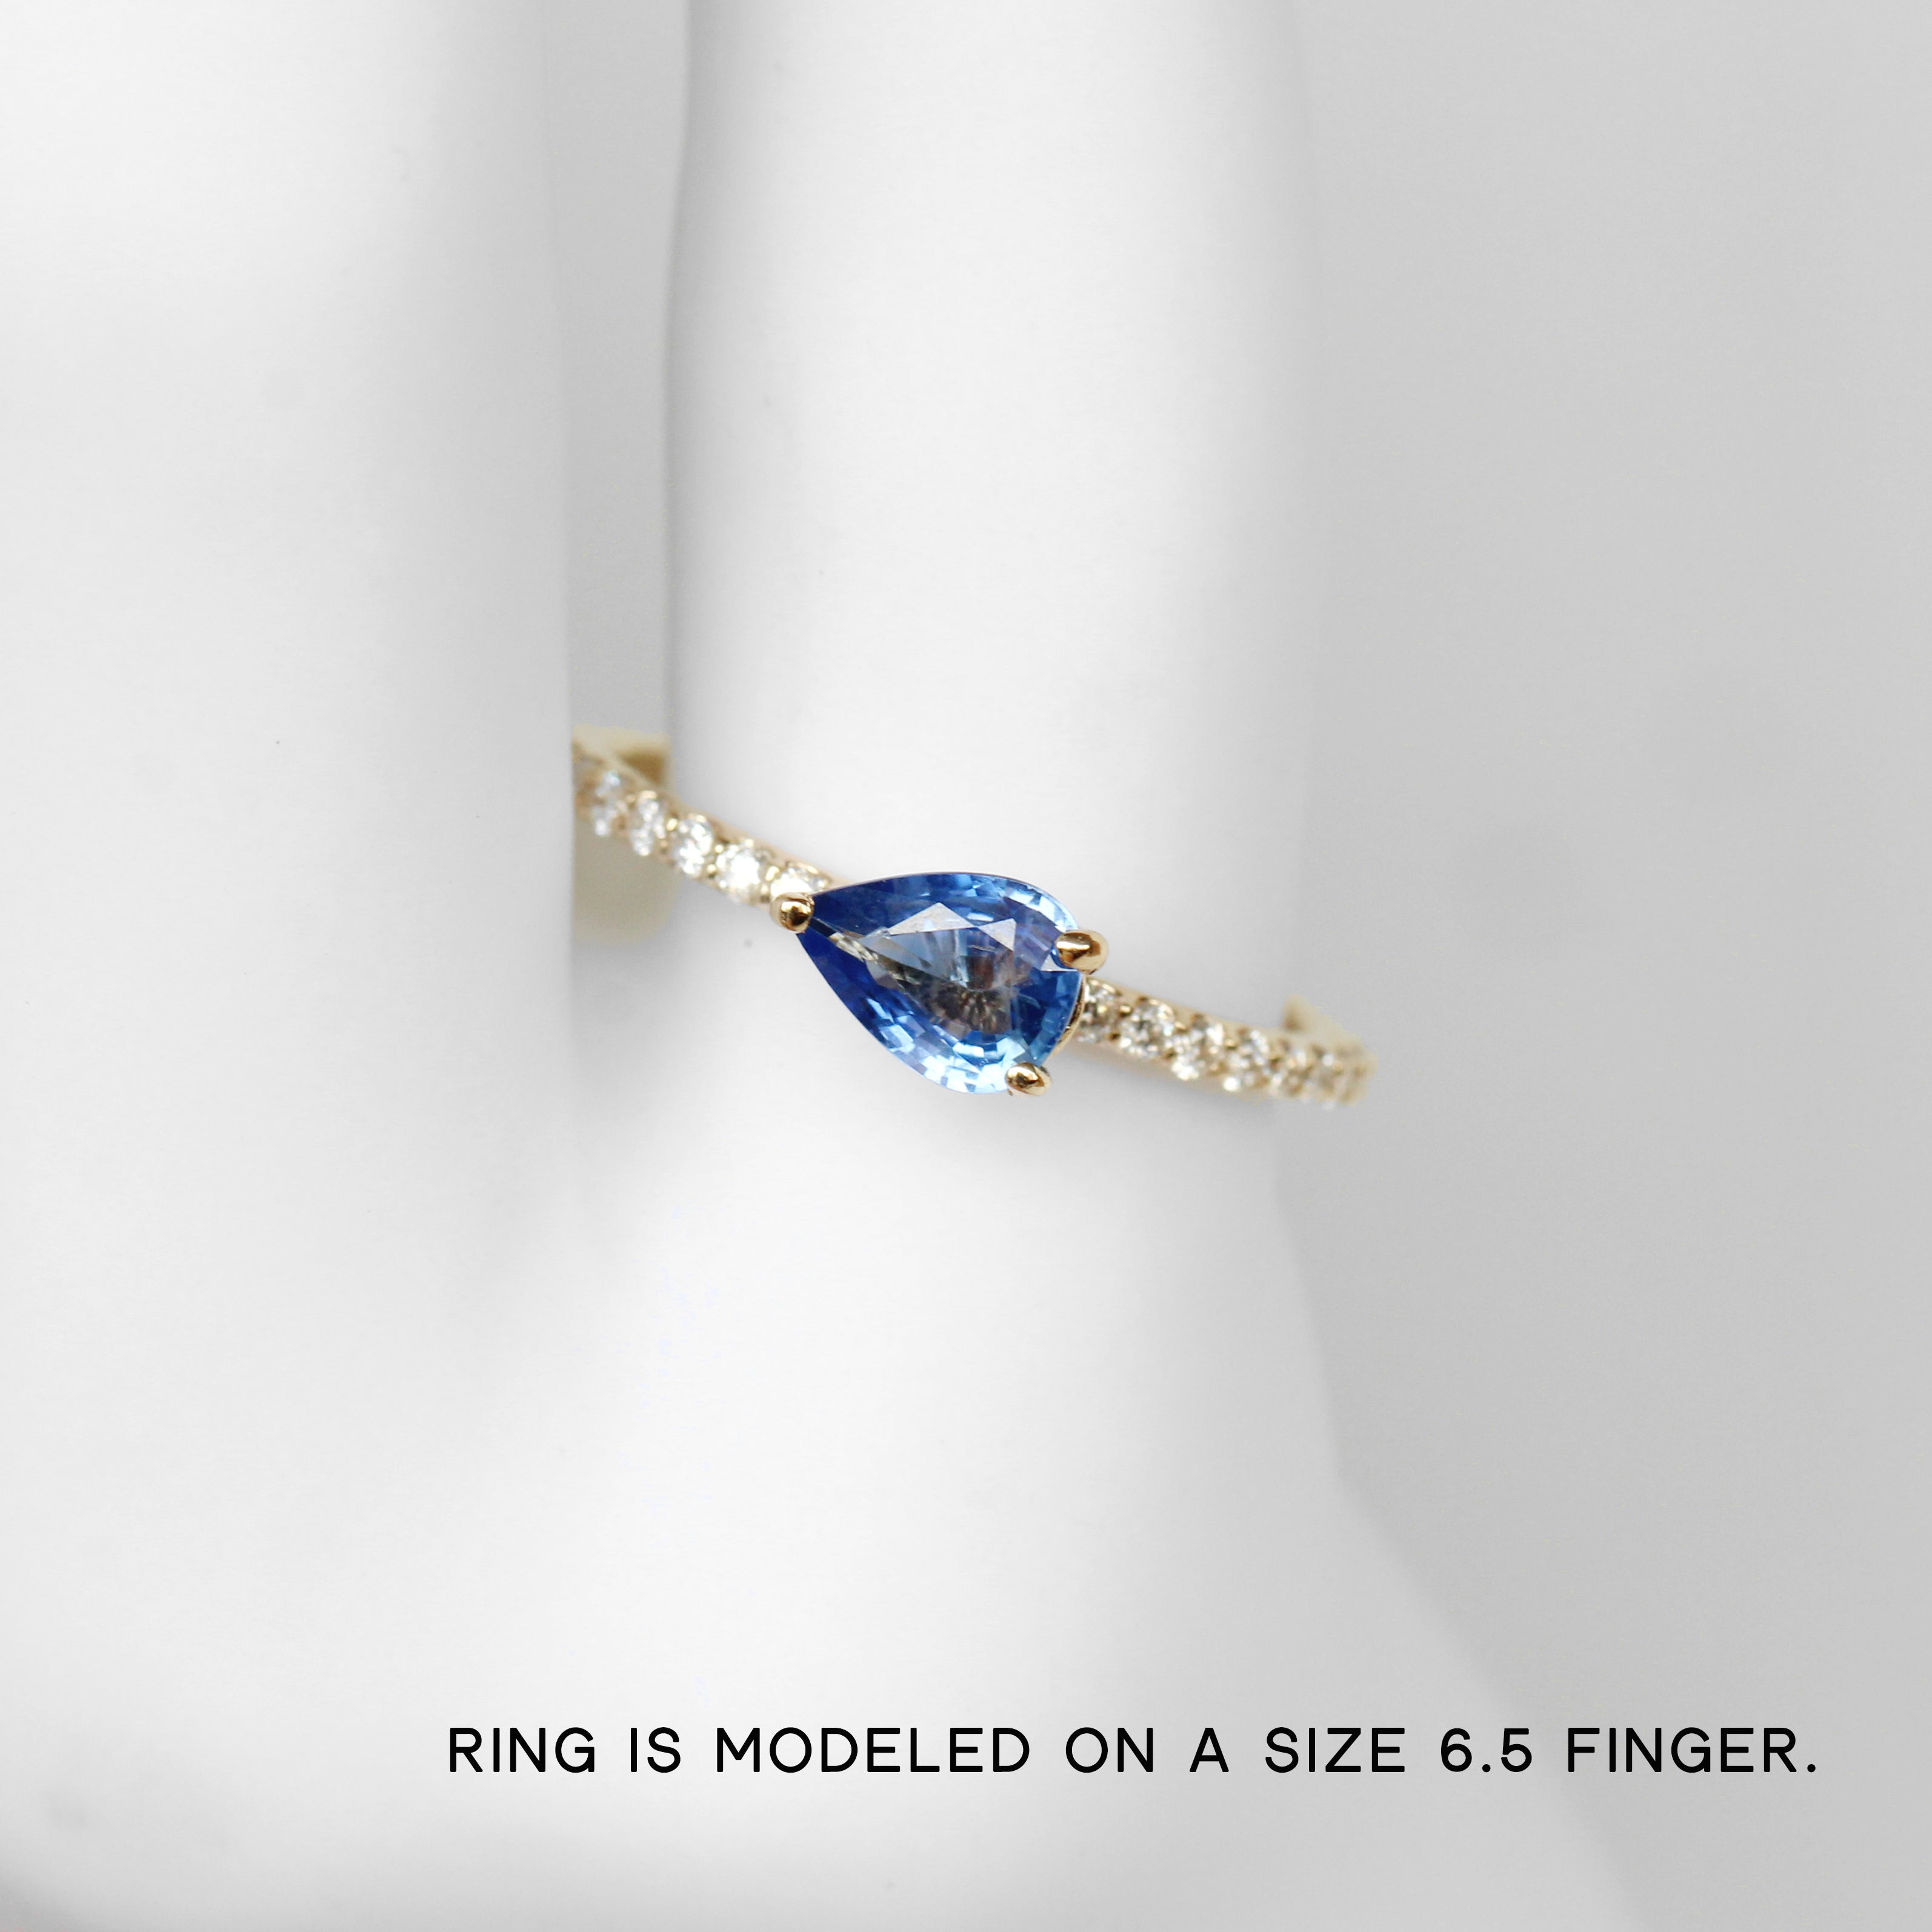 Raine Ring with a Pear Sapphire in 10k Yellow Gold - Ready to Size and Ship